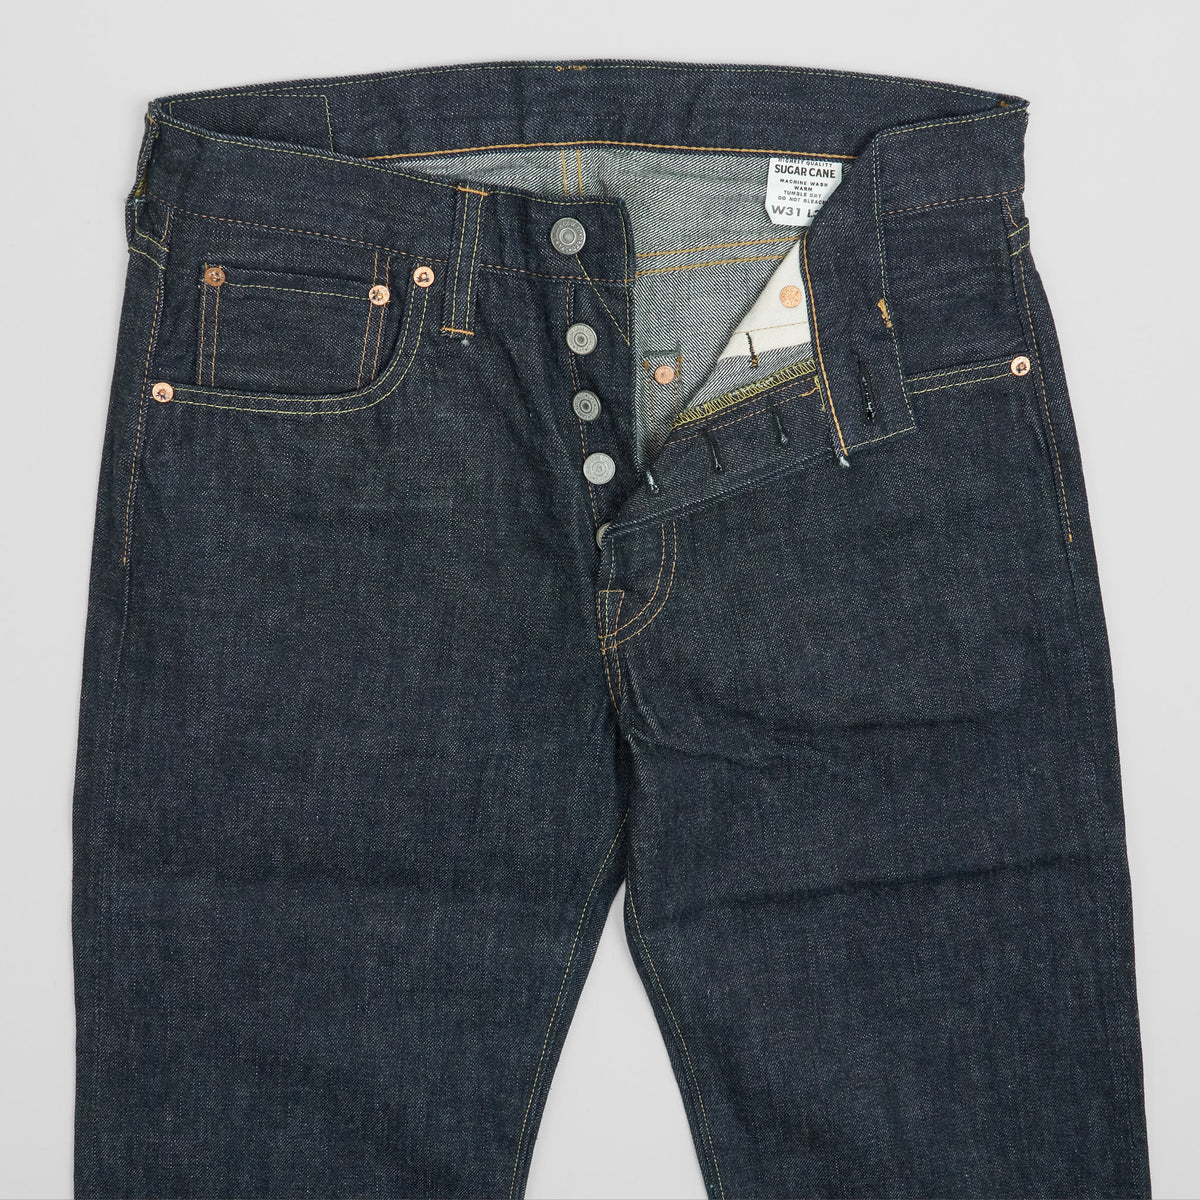 Sugar Cane Standart Straight Selvage Denim Jeans